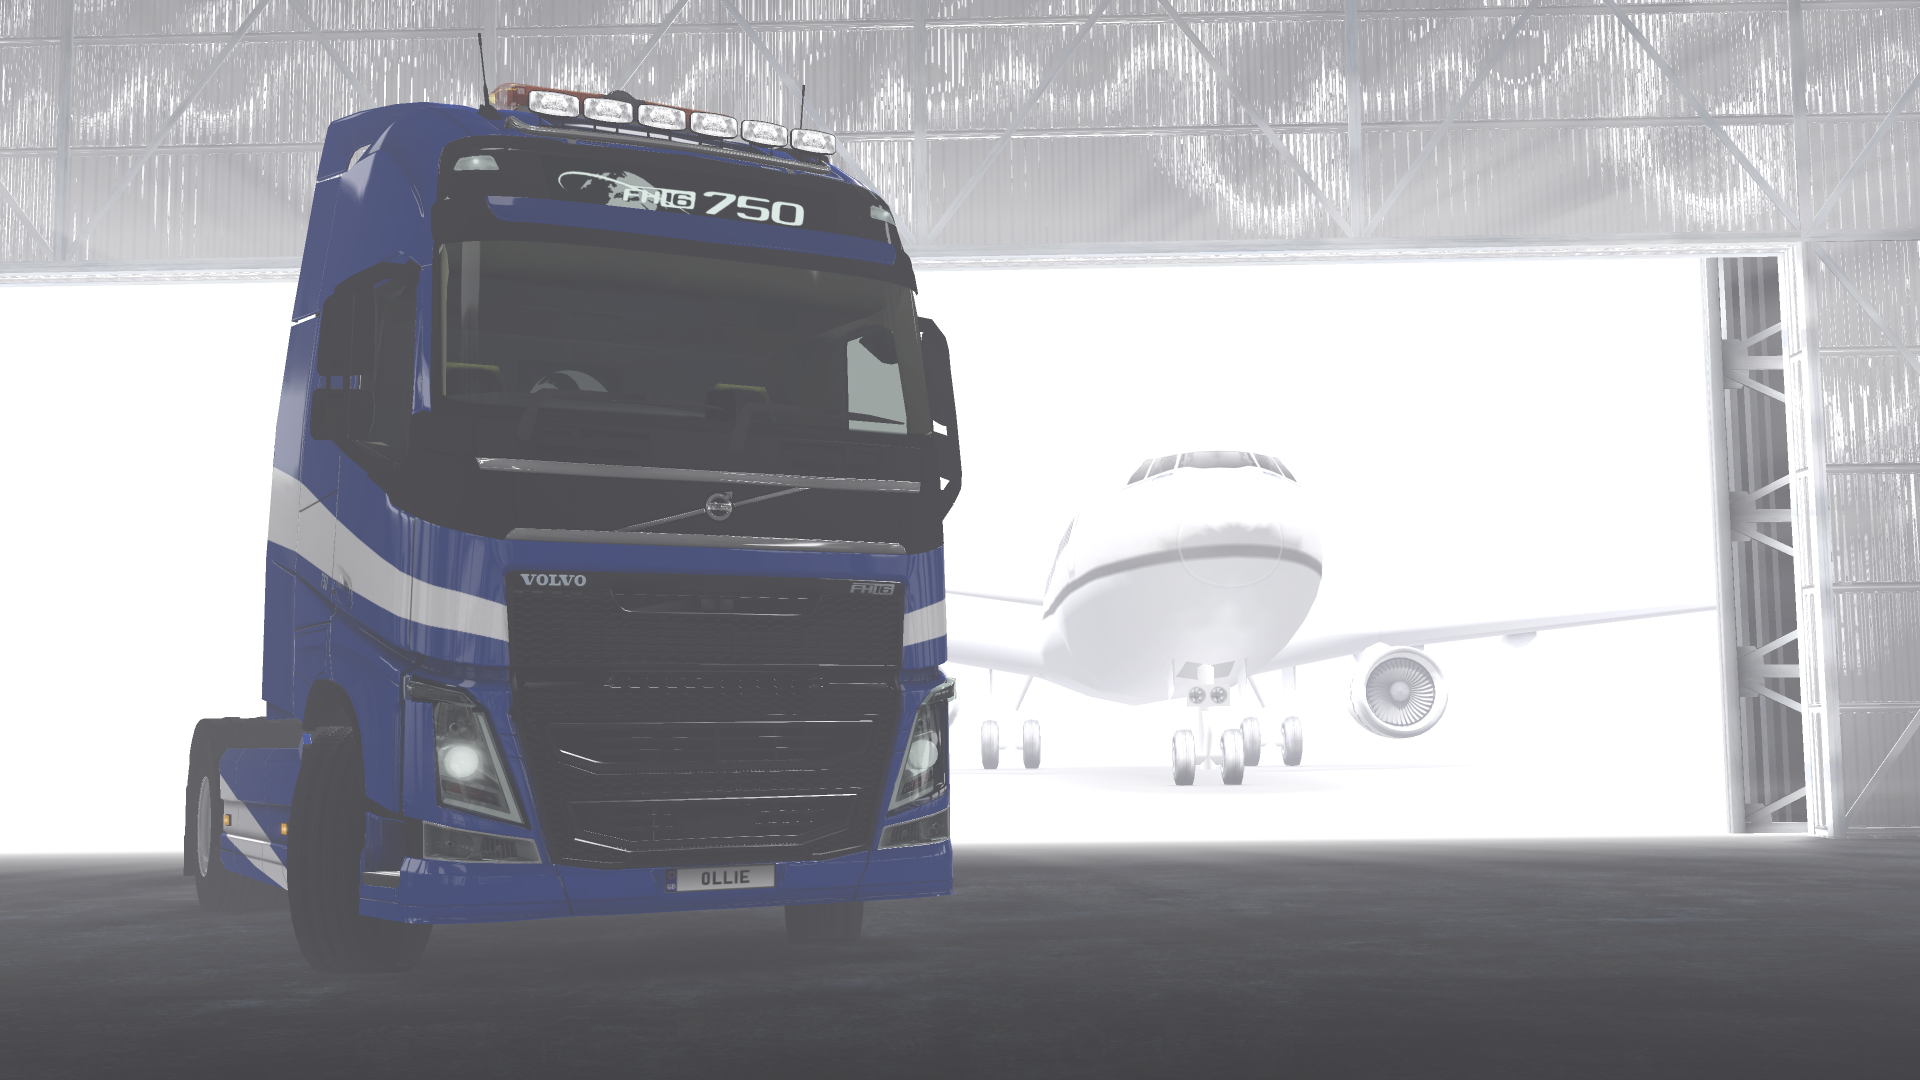 ets2_20190225_043324_00.png